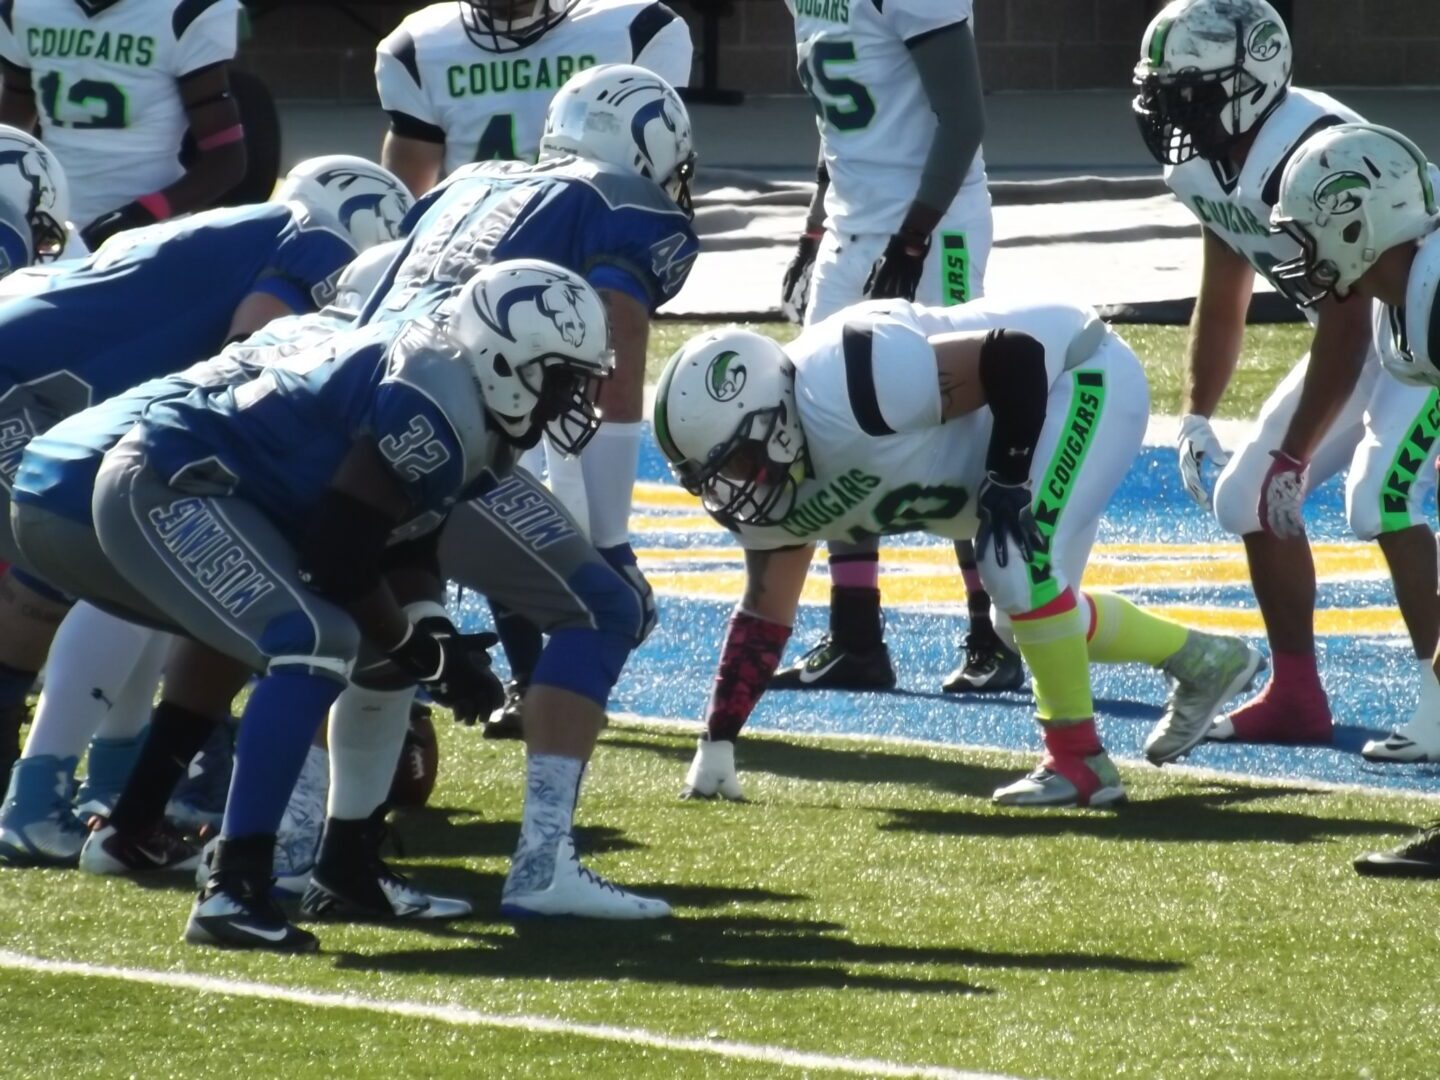 Despite a sluggish offense, the Muskegon Mustangs get past the Lakeshore Cougars 29-13